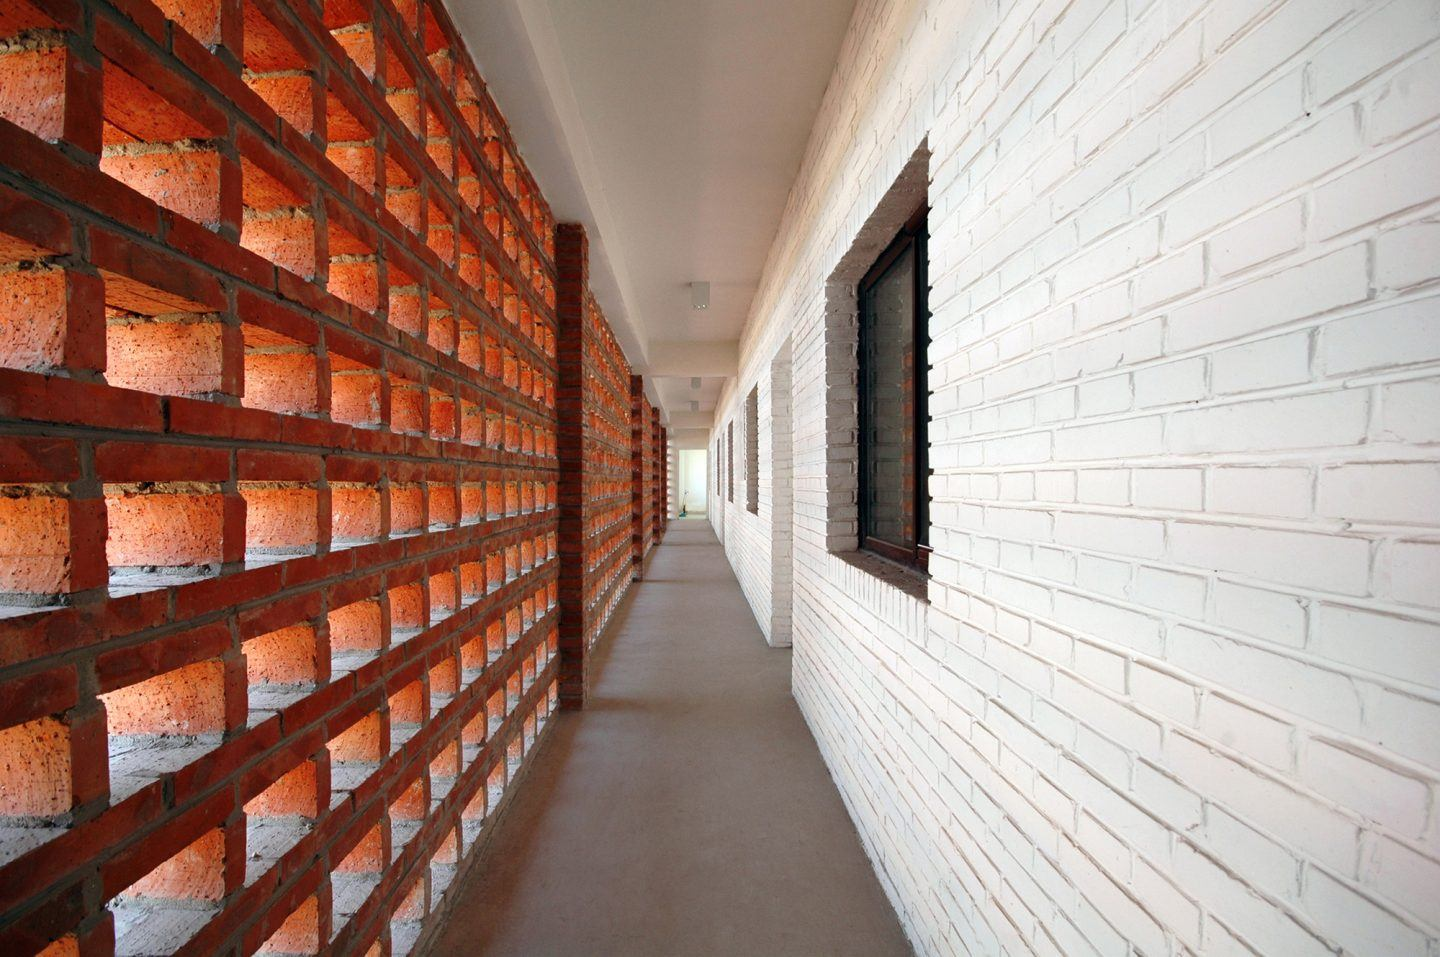 IGNANT-Architecture-Atelier-100s+1-Xiang-Jing-Qu-Guangci-003